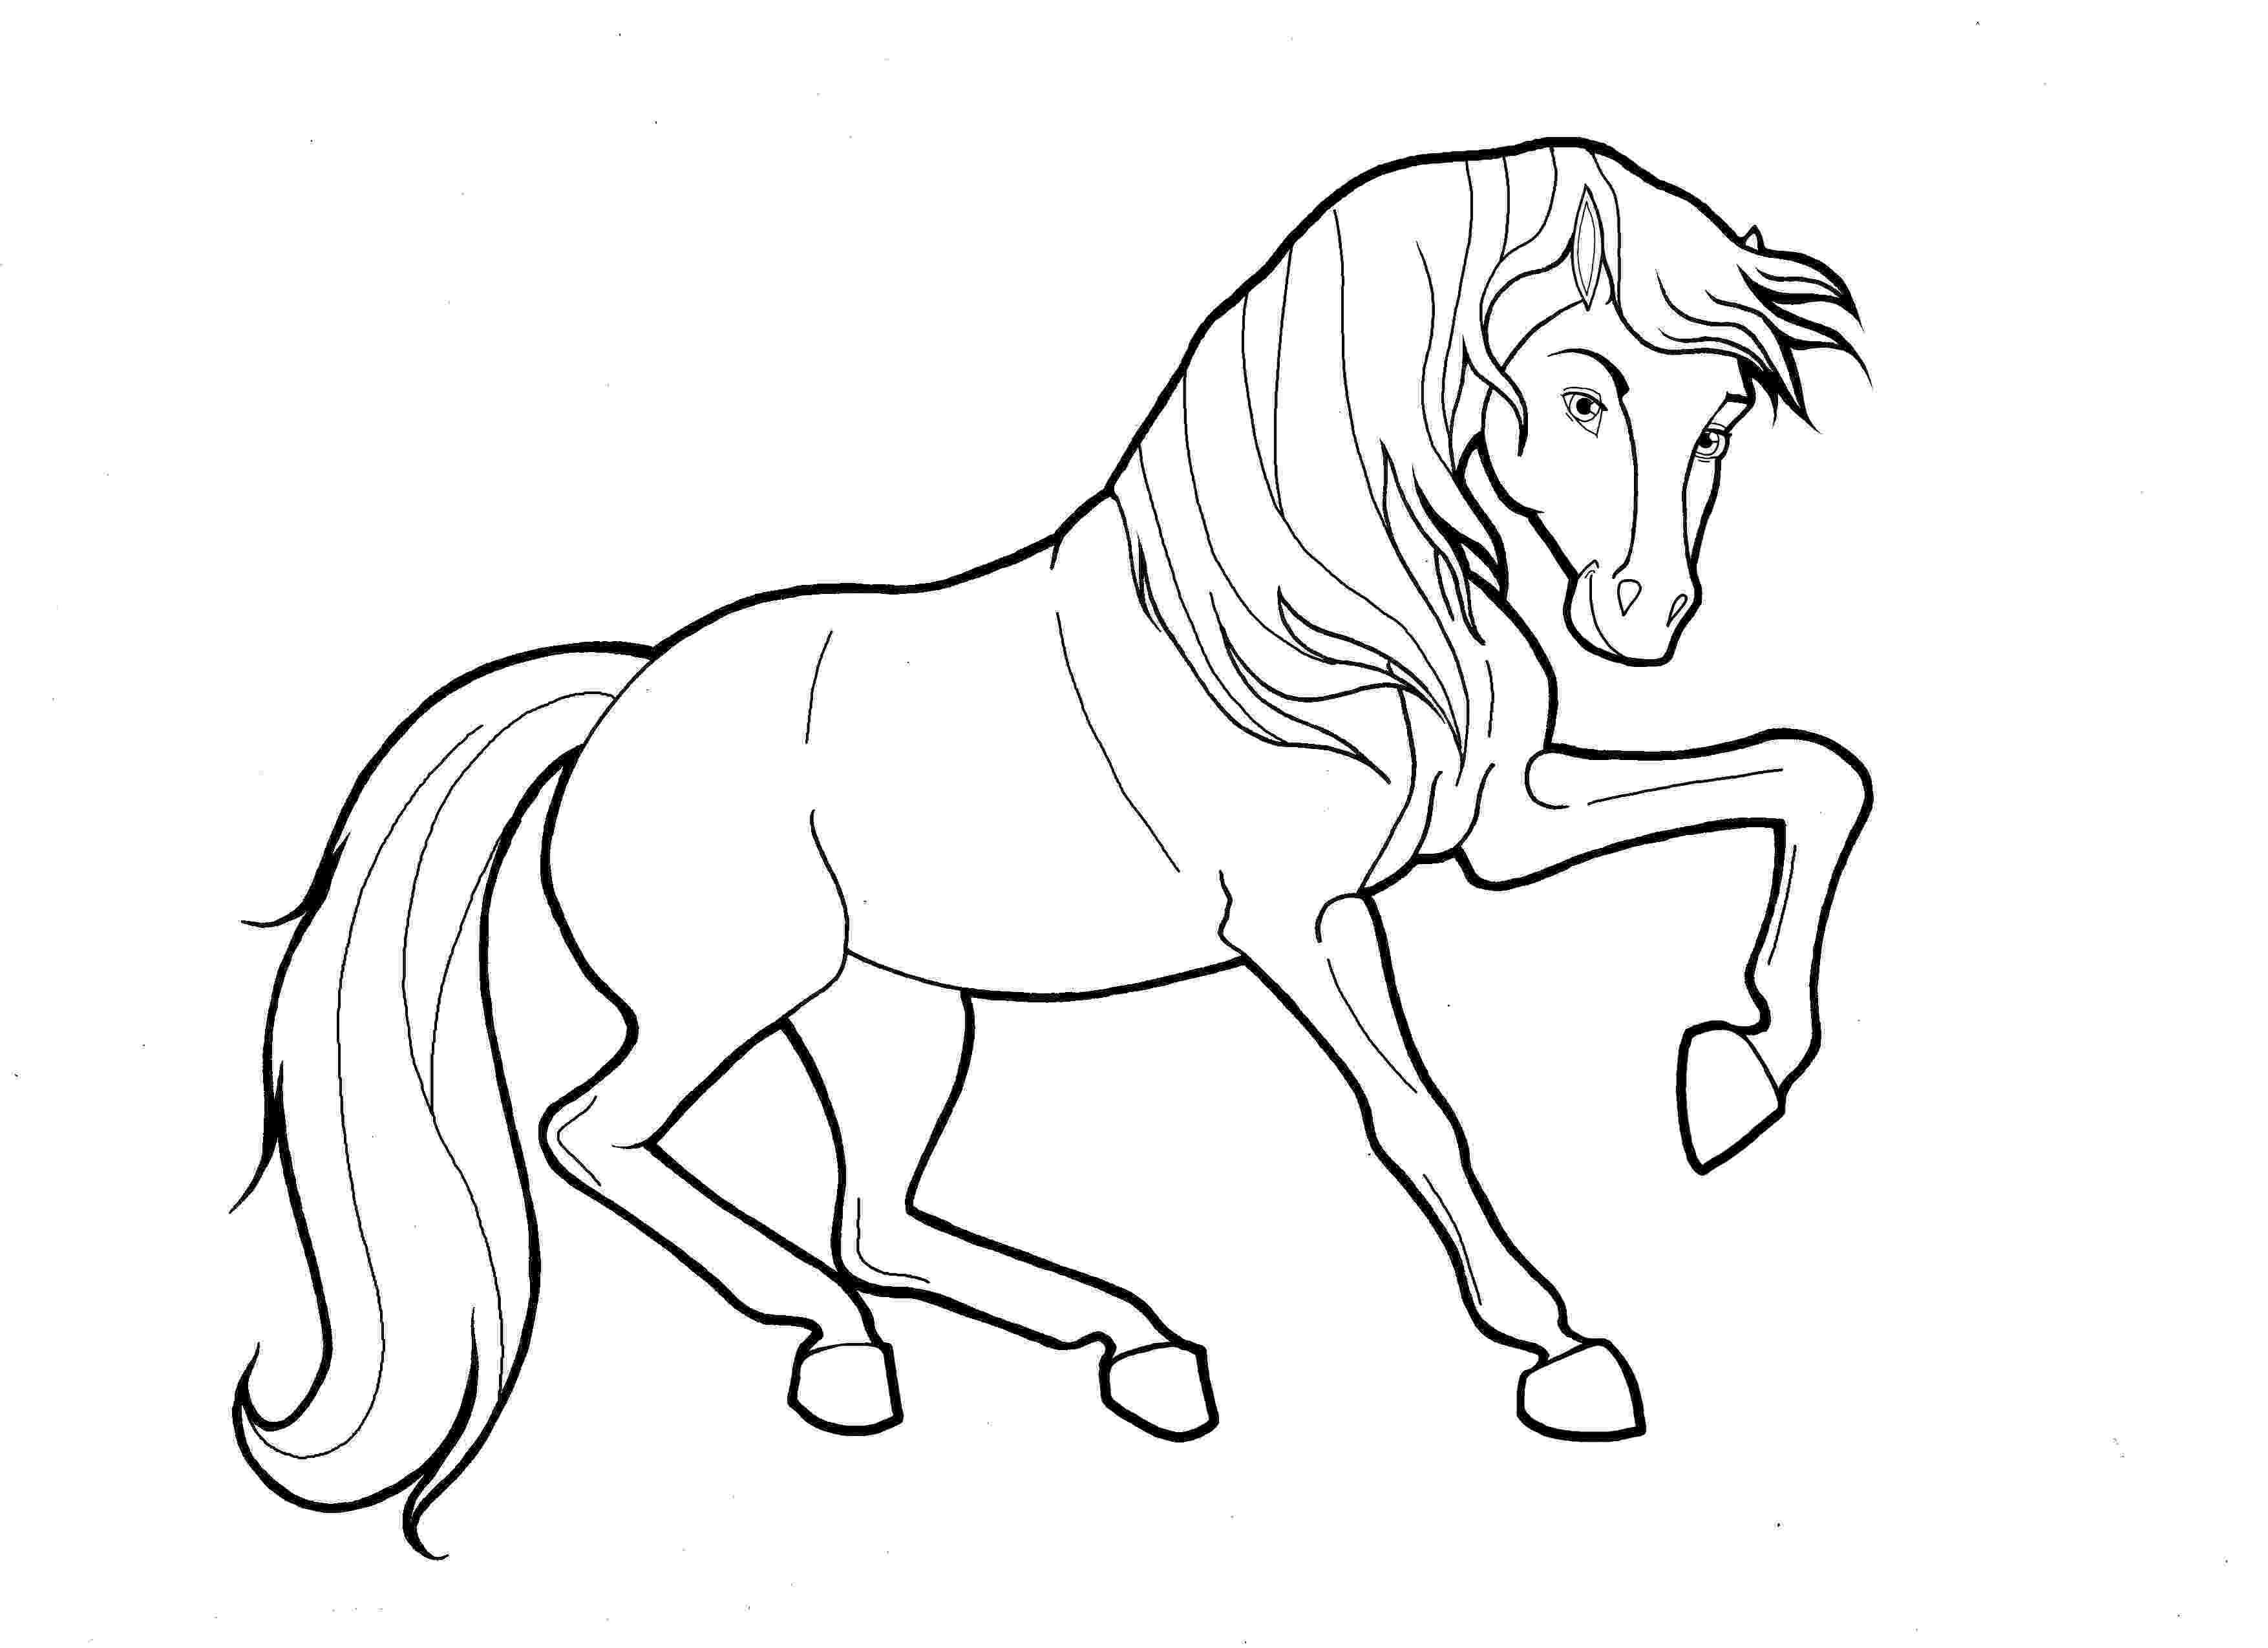 free coloring pages of horses wild horses coloring pages getcoloringpagescom coloring horses pages free of